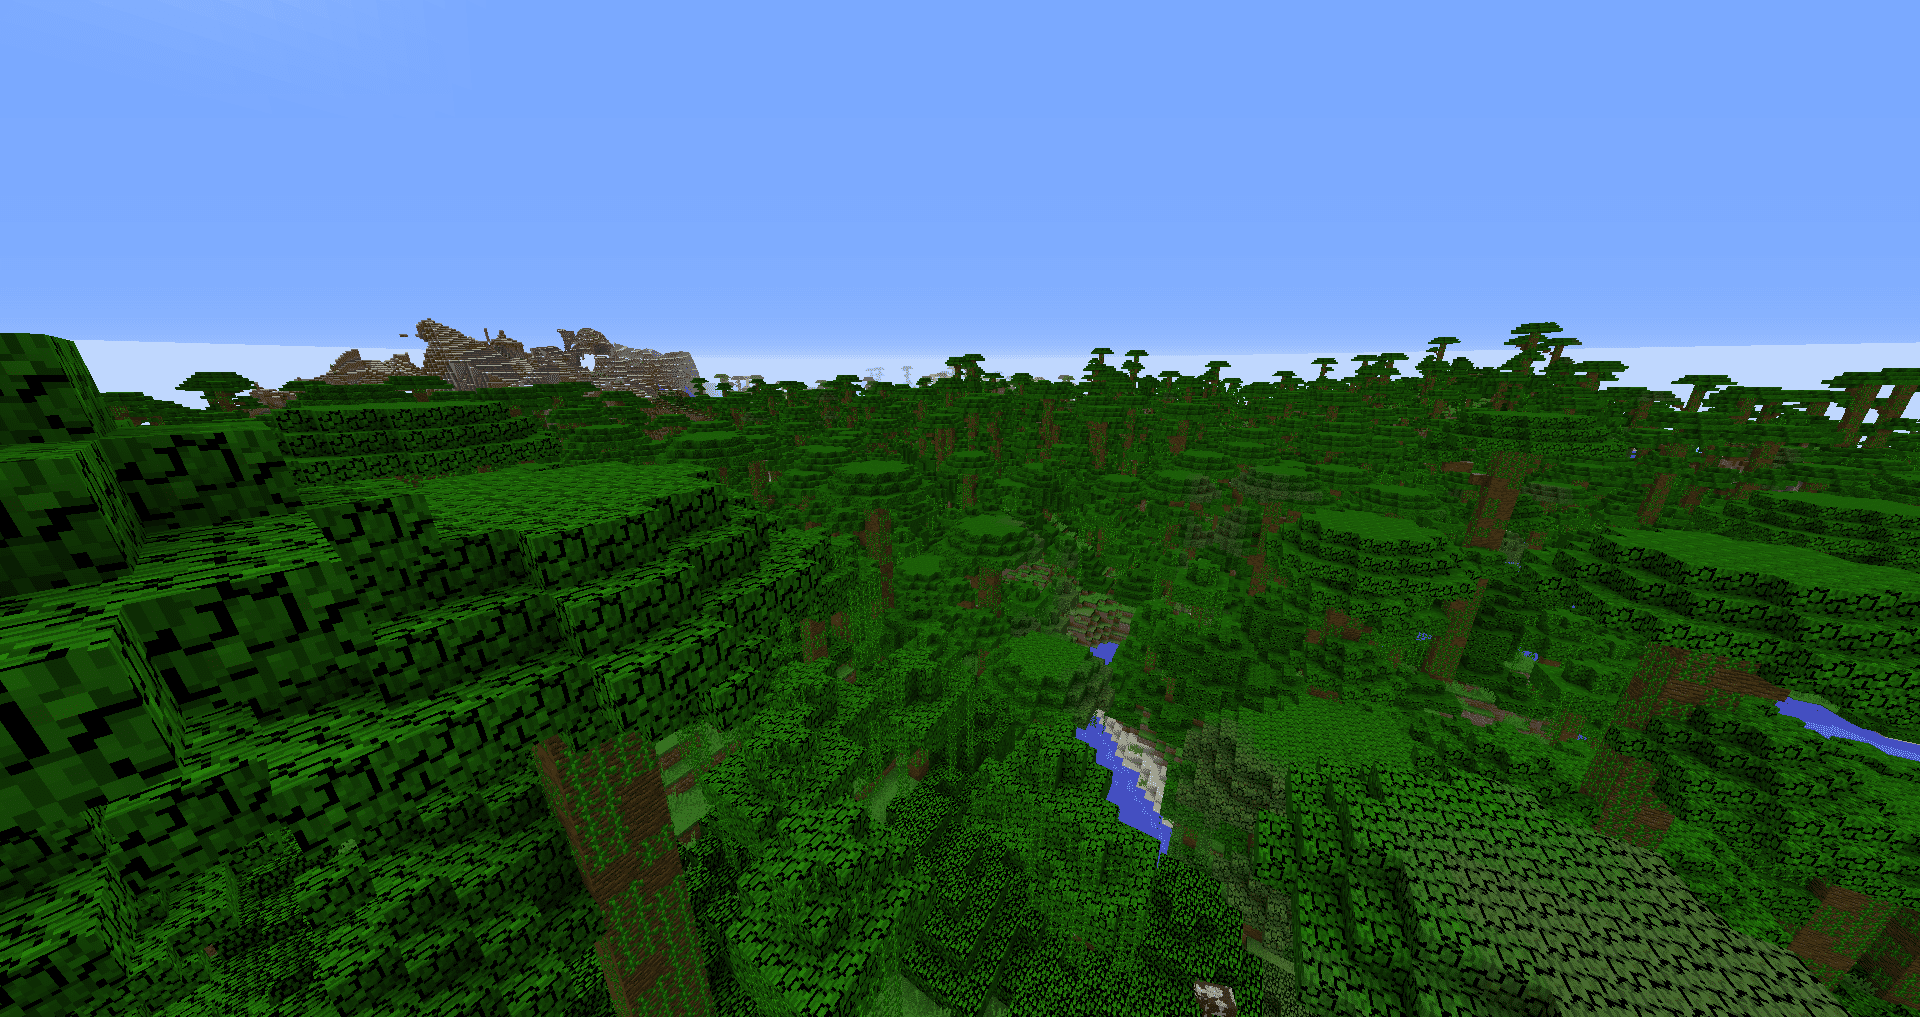 Minecraft Biomes Explained: Jungle Biome